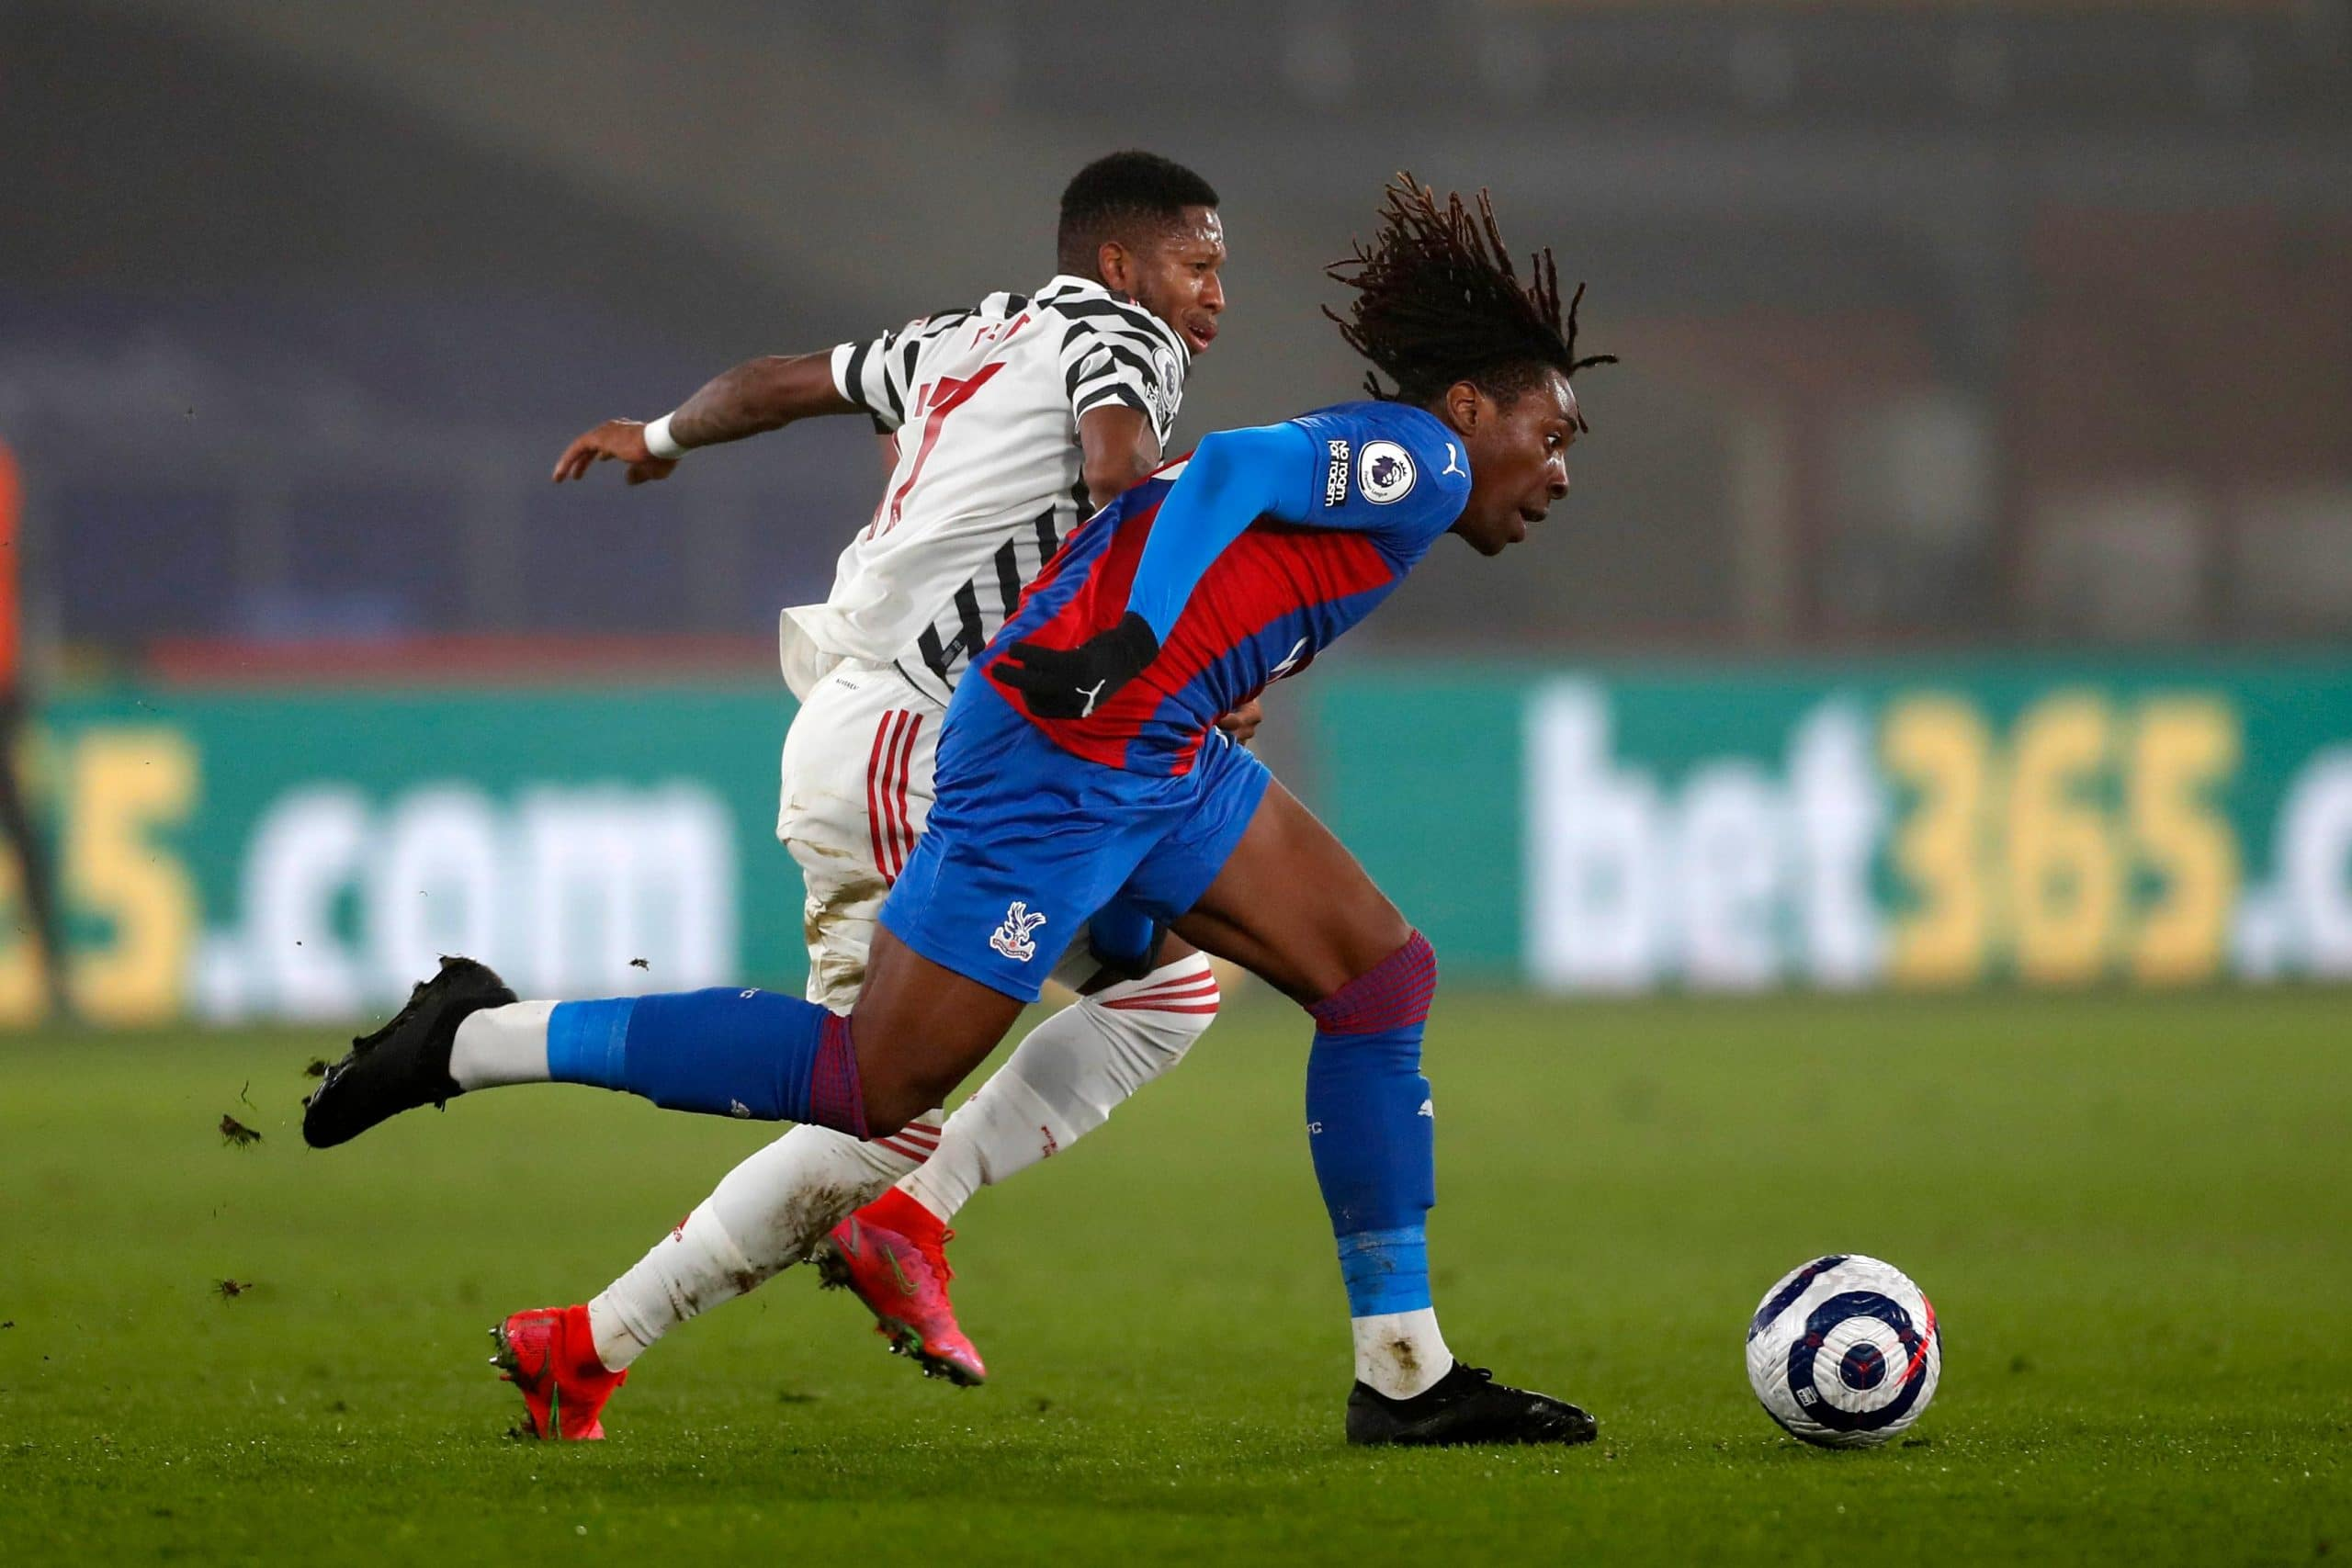 Eze, Crystal Palace Teammates Make Premier League History Vs Man United In Home Draw